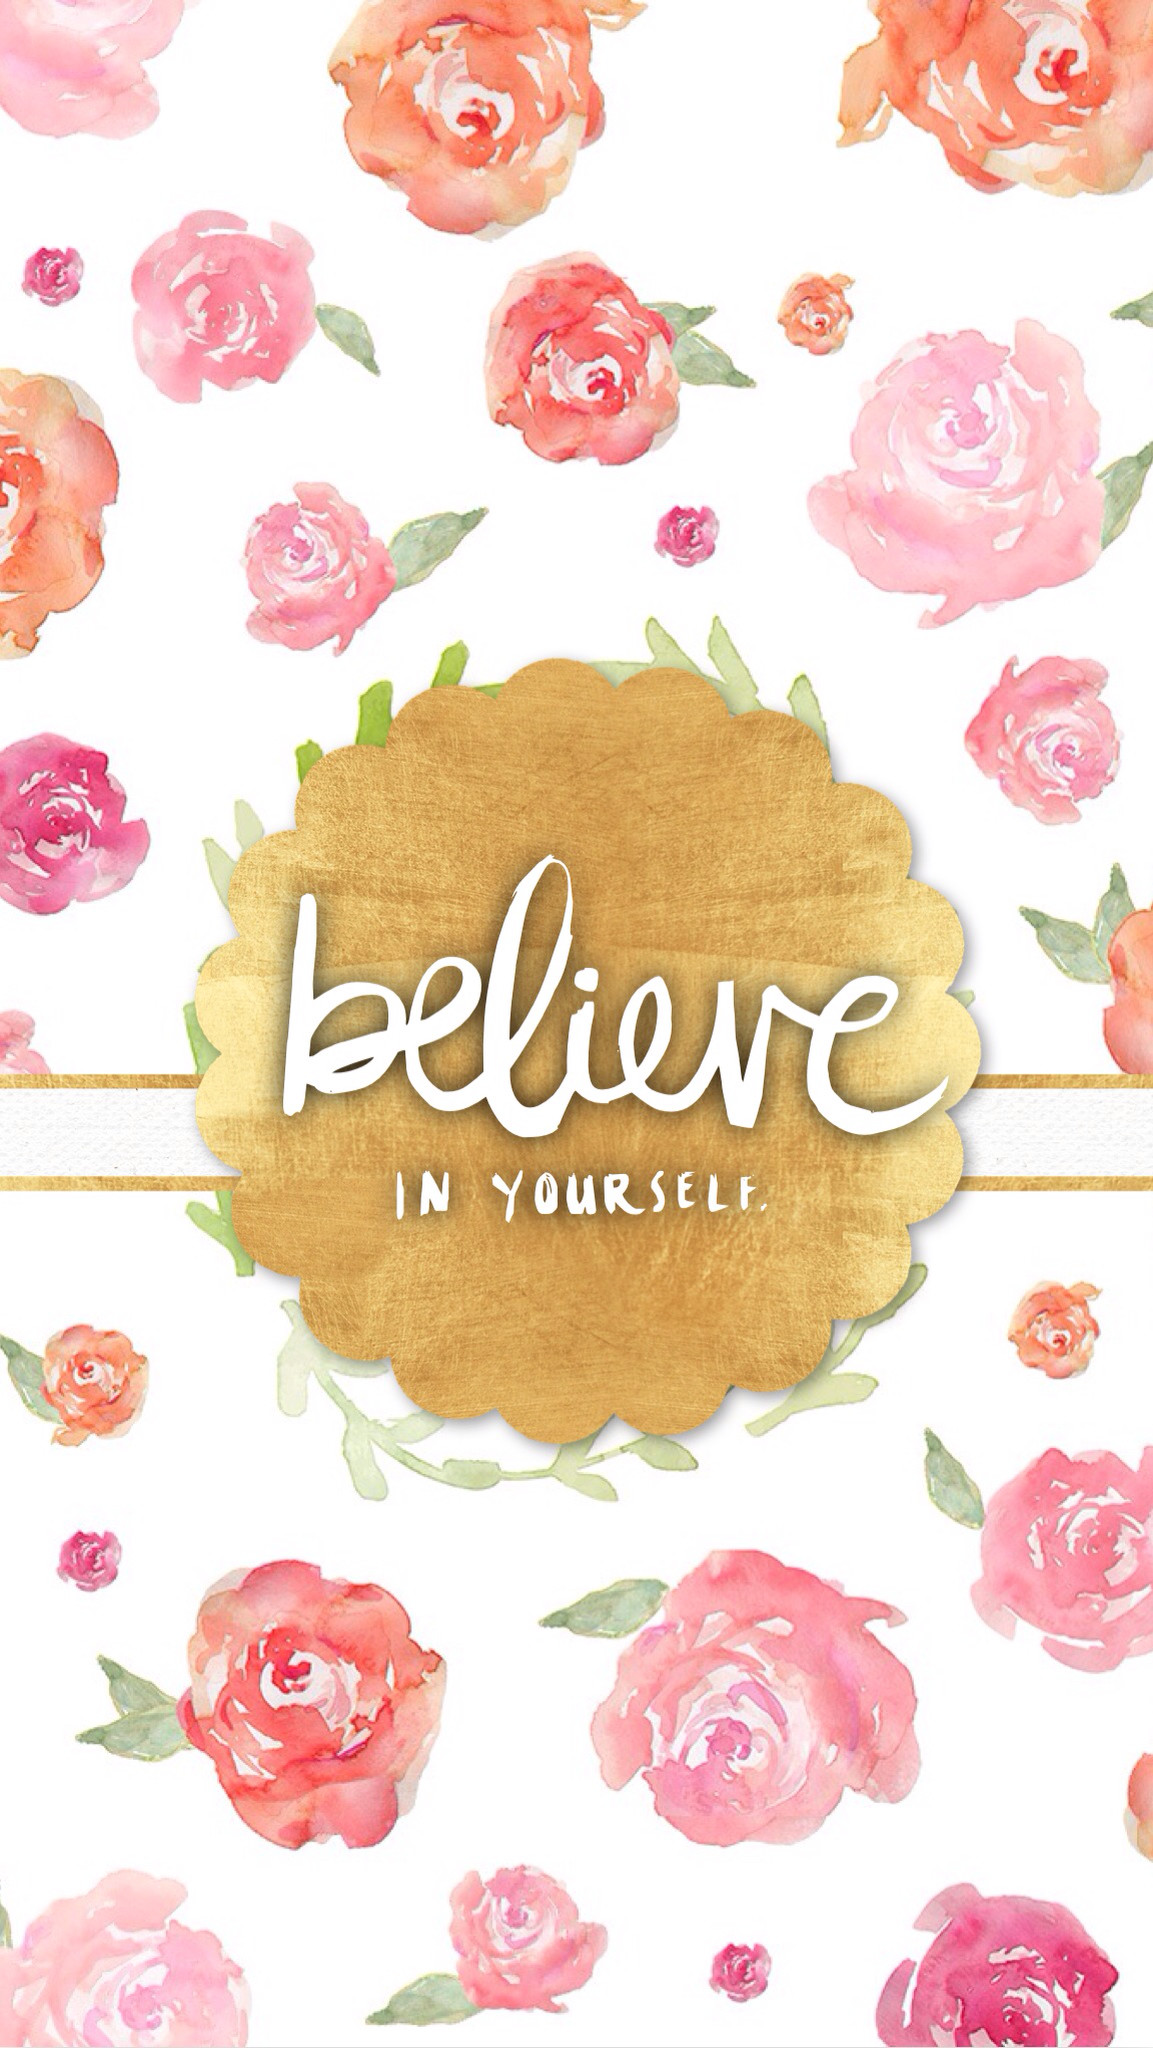 1153x2048 Pink watercolour floral roses gld Believe iphone phone wallpaper background  lockscreen